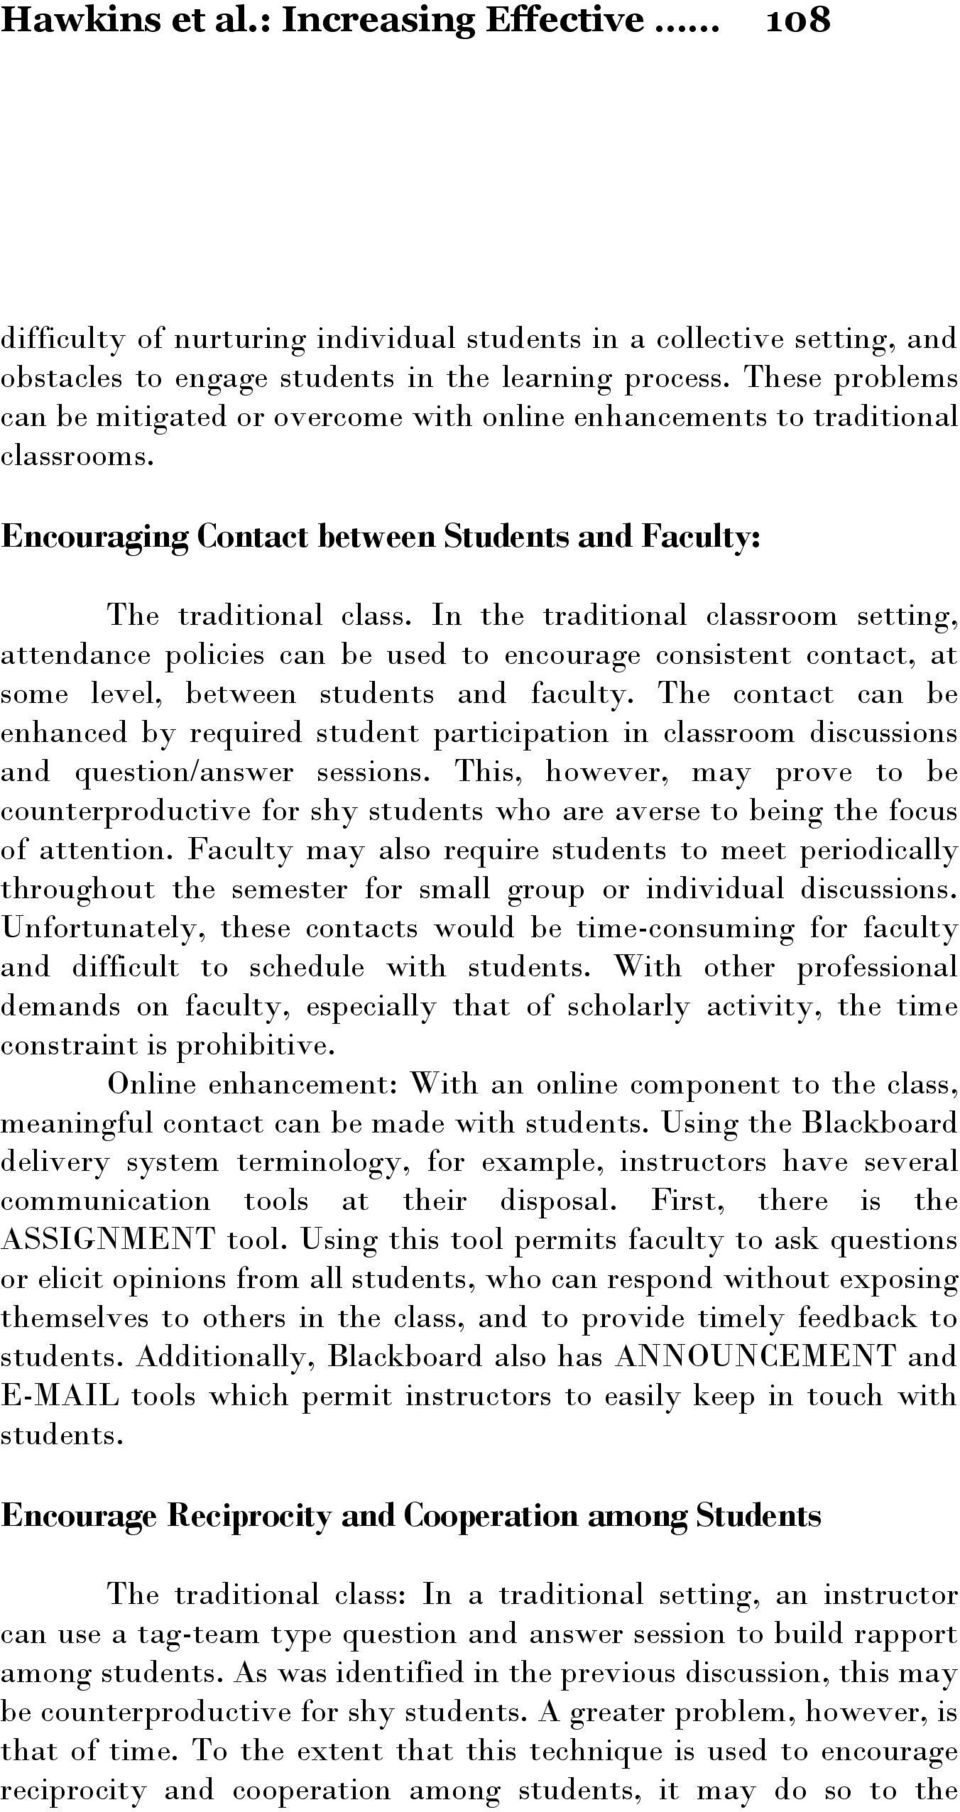 In the traditional classroom setting, attendance policies can be used to encourage consistent contact, at some level, between students and faculty.